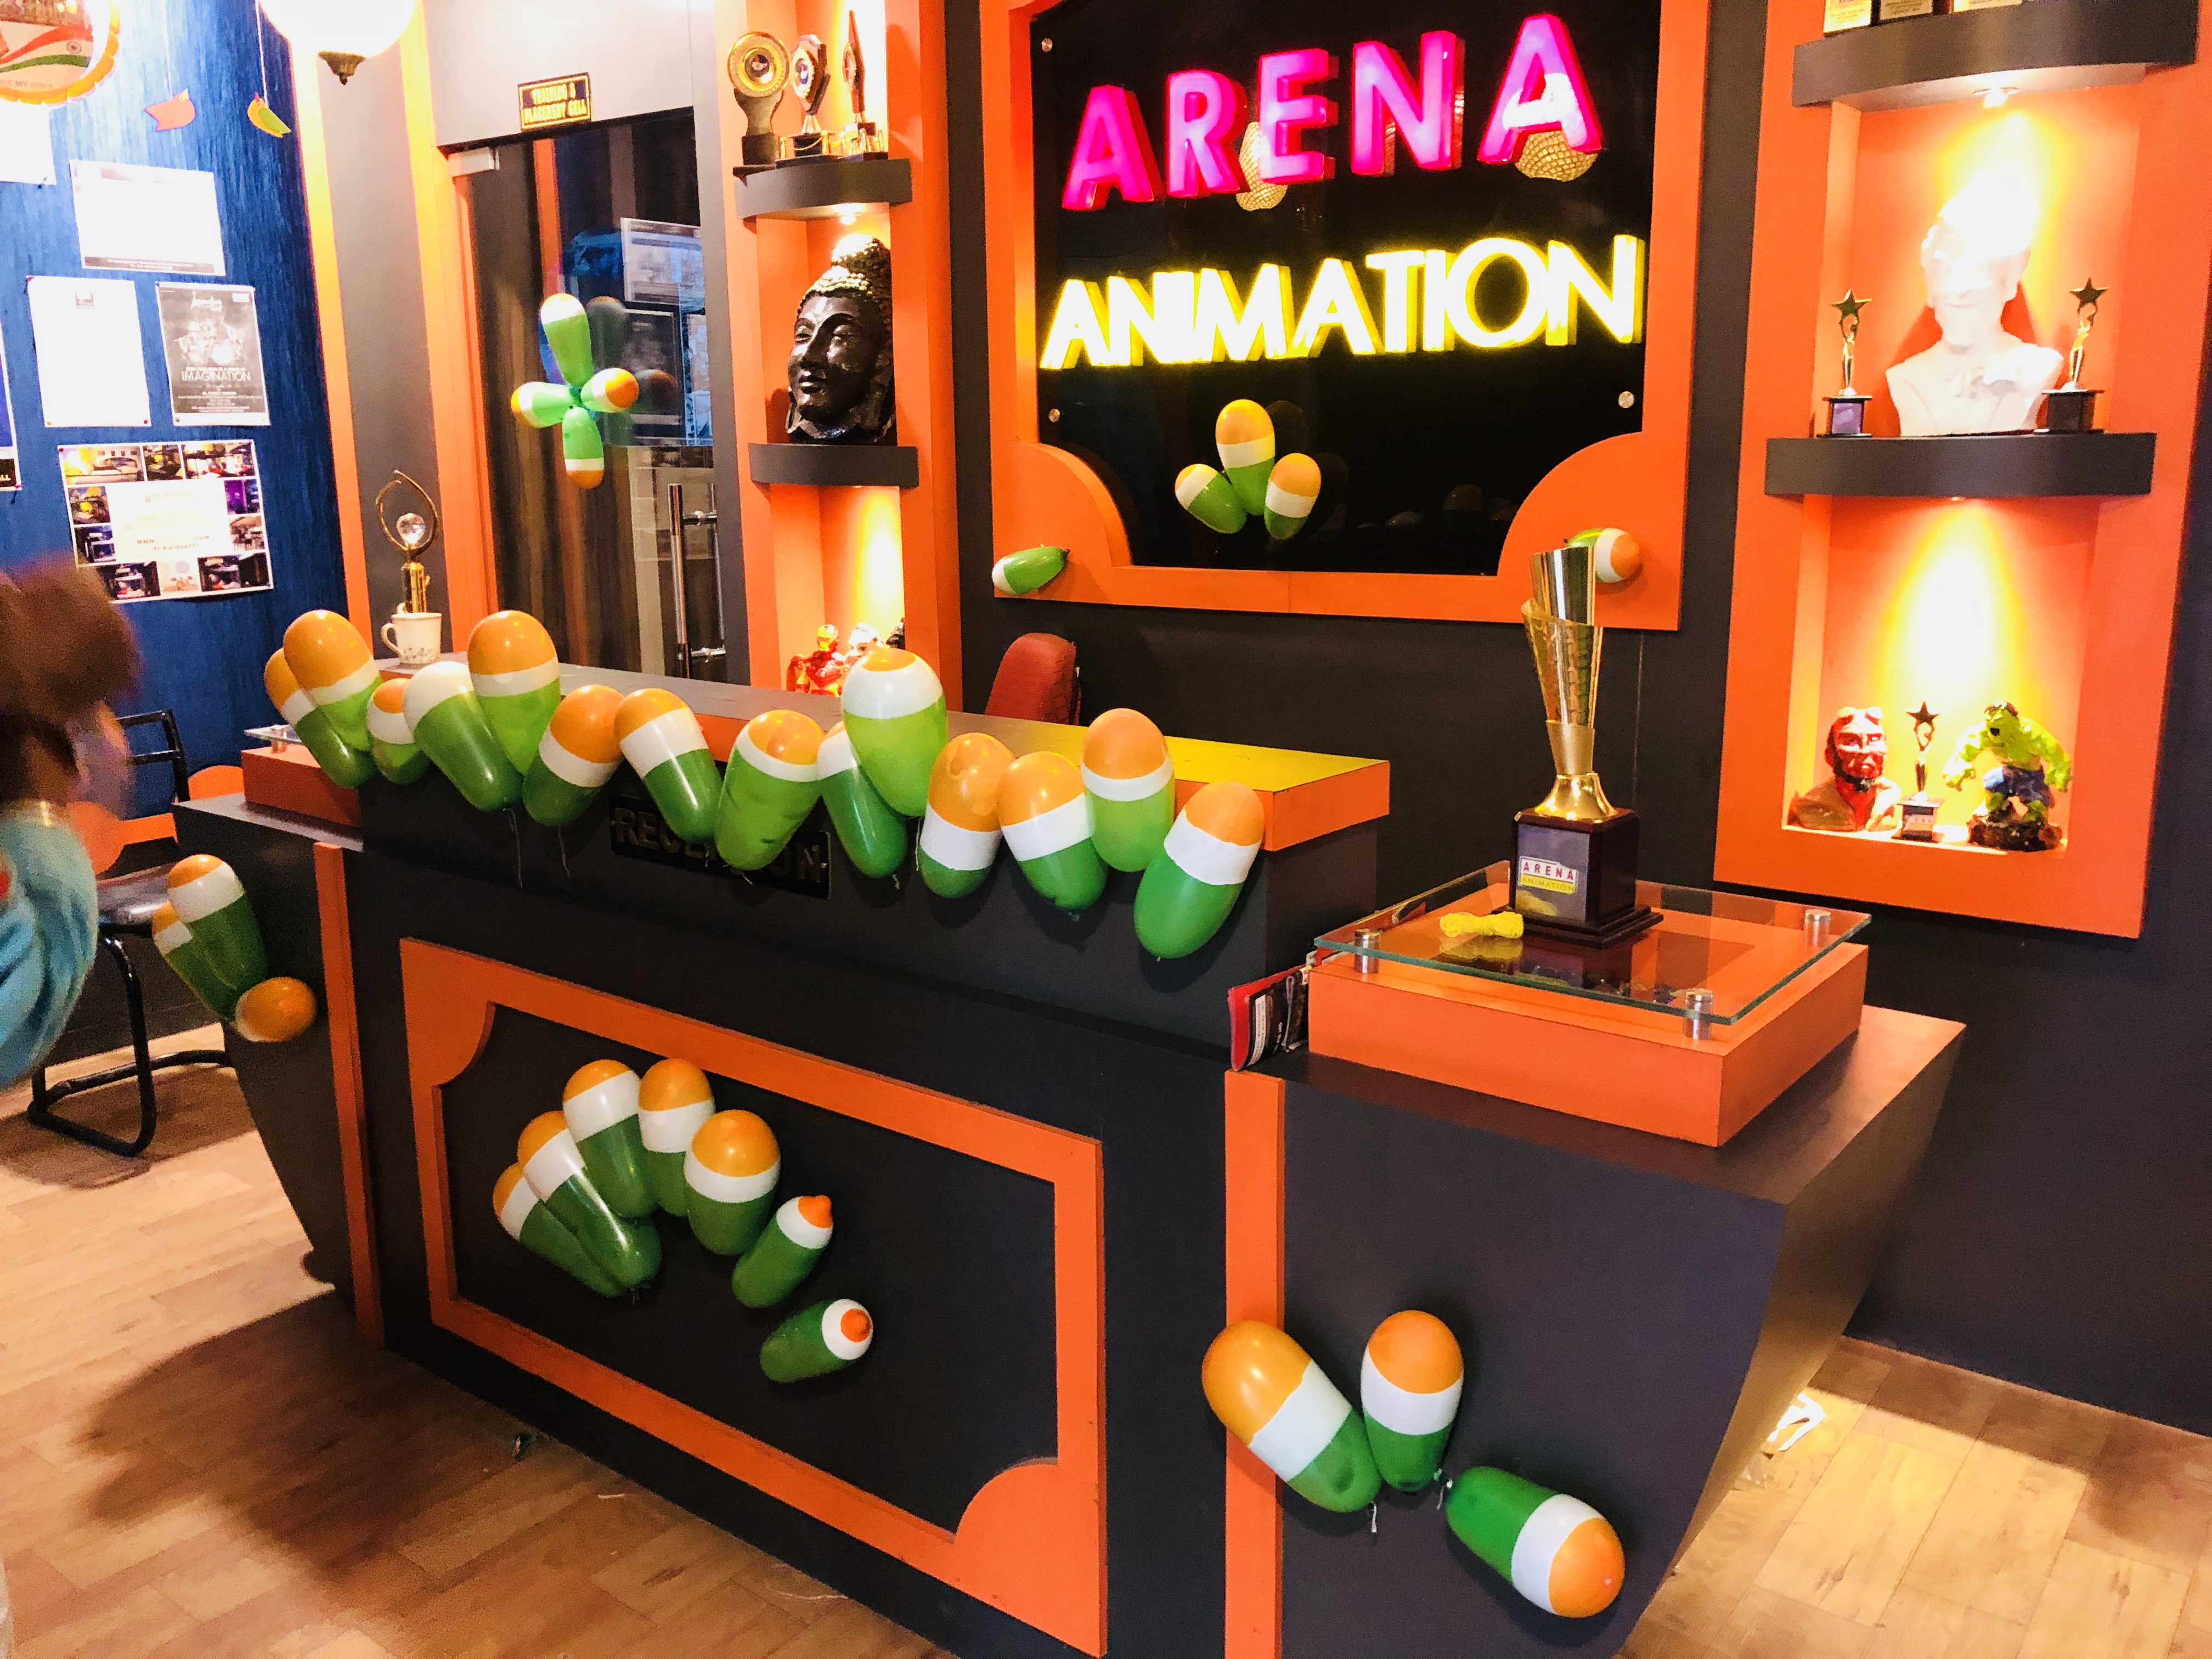 Arena Animation Lucknow Courses Fees Placements Ranking Admission 2020